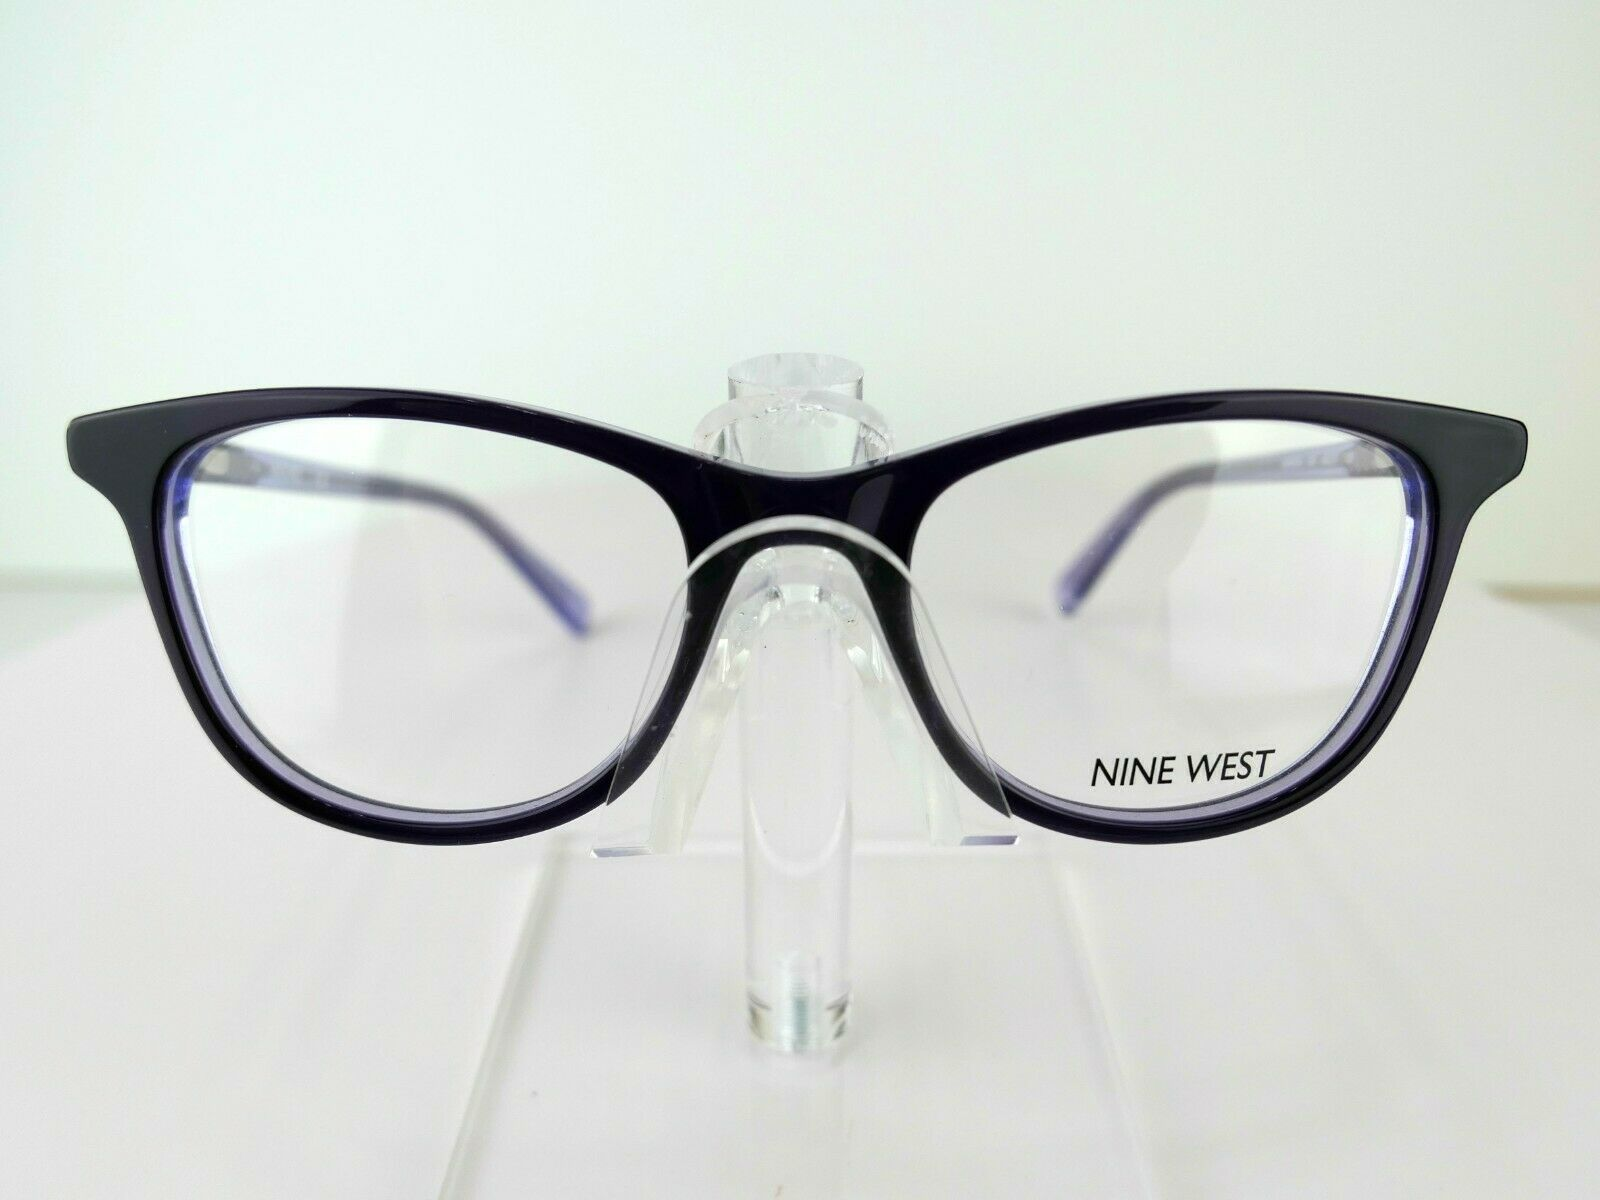 Primary image for Nine West NW 5165 (500) Purple / Glitter 48-17-135 PETITE FIT Eyeglass Frame